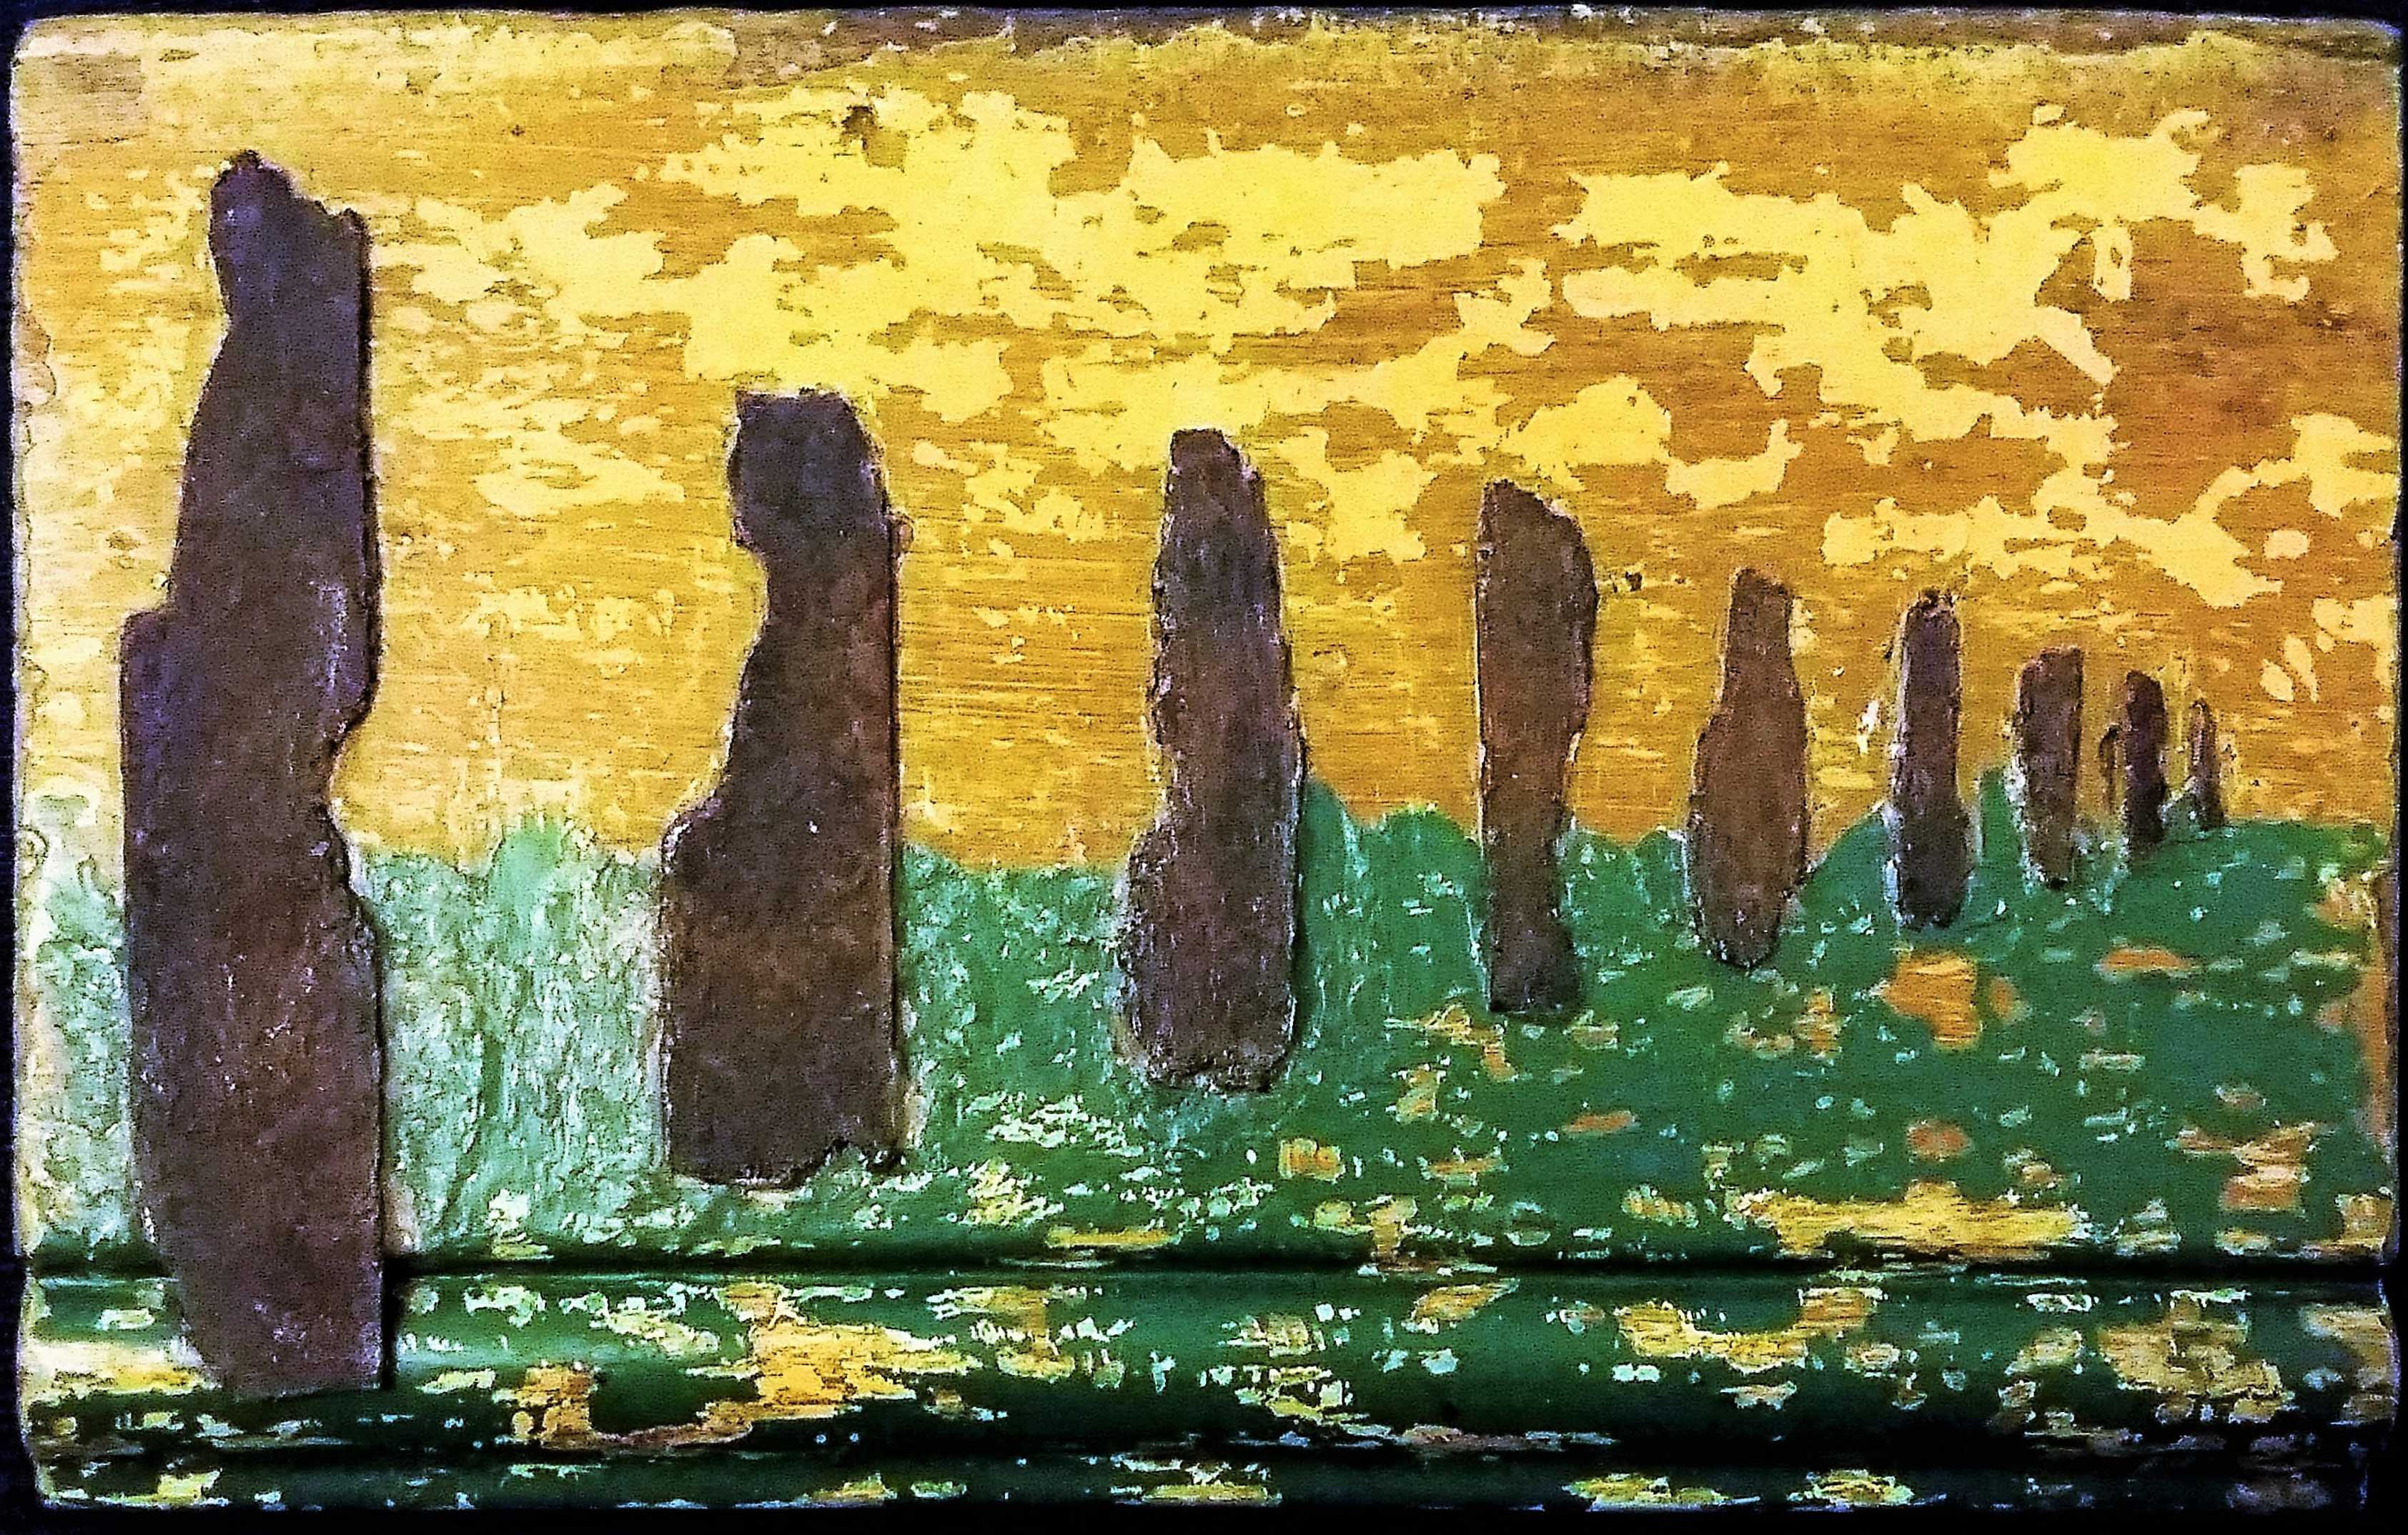 Standing Stones, Mixed media - found materials, 2015, by Gary Studley